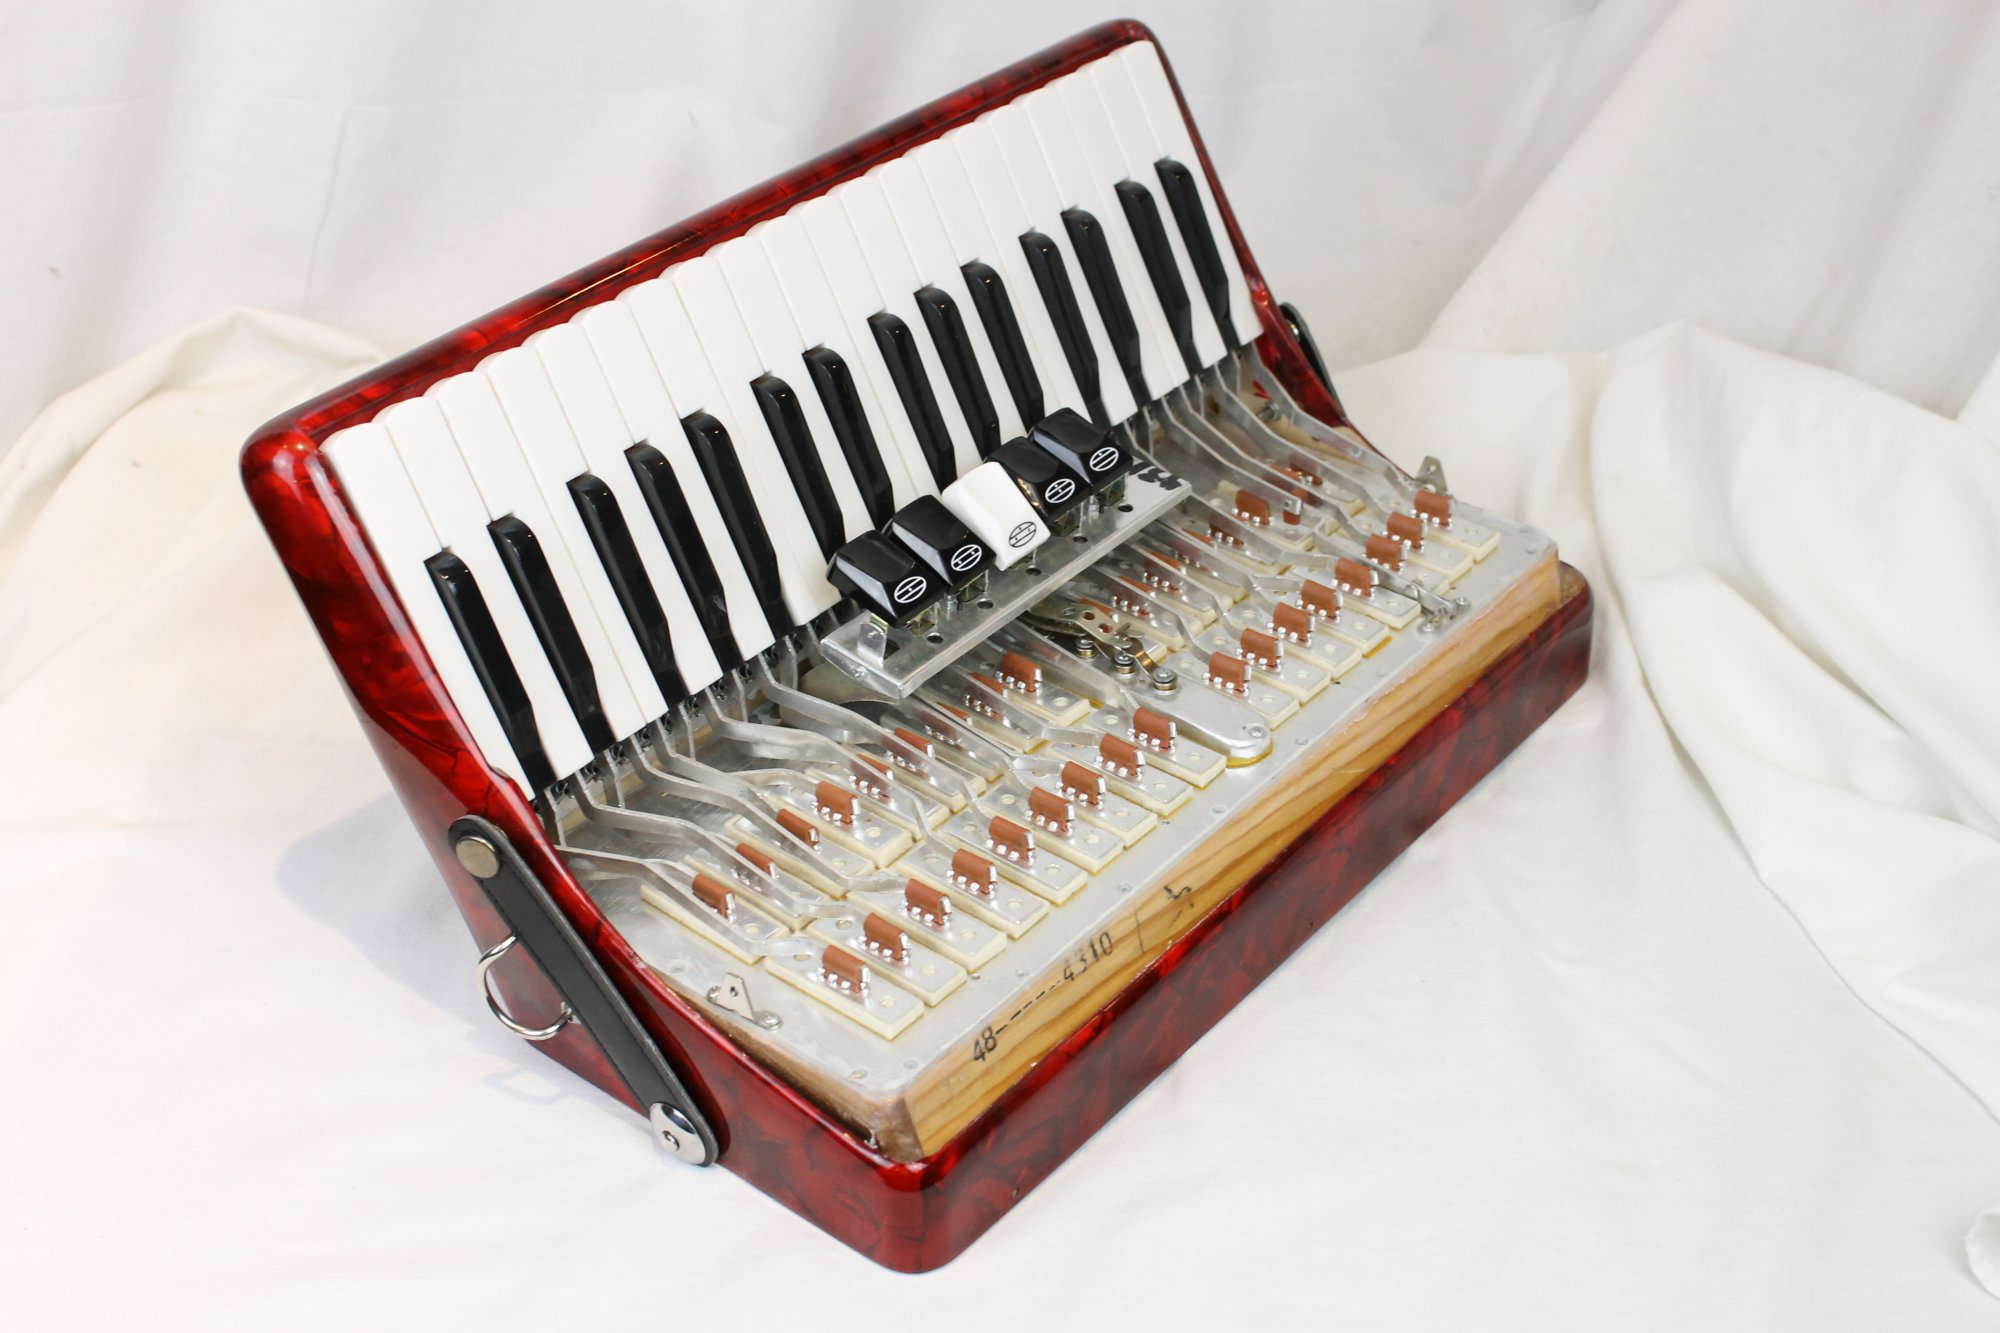 NEW Hohner Hohnica Accordion Part - Red Treble Section and Switch Mechanism 16.5 x 7 x 9